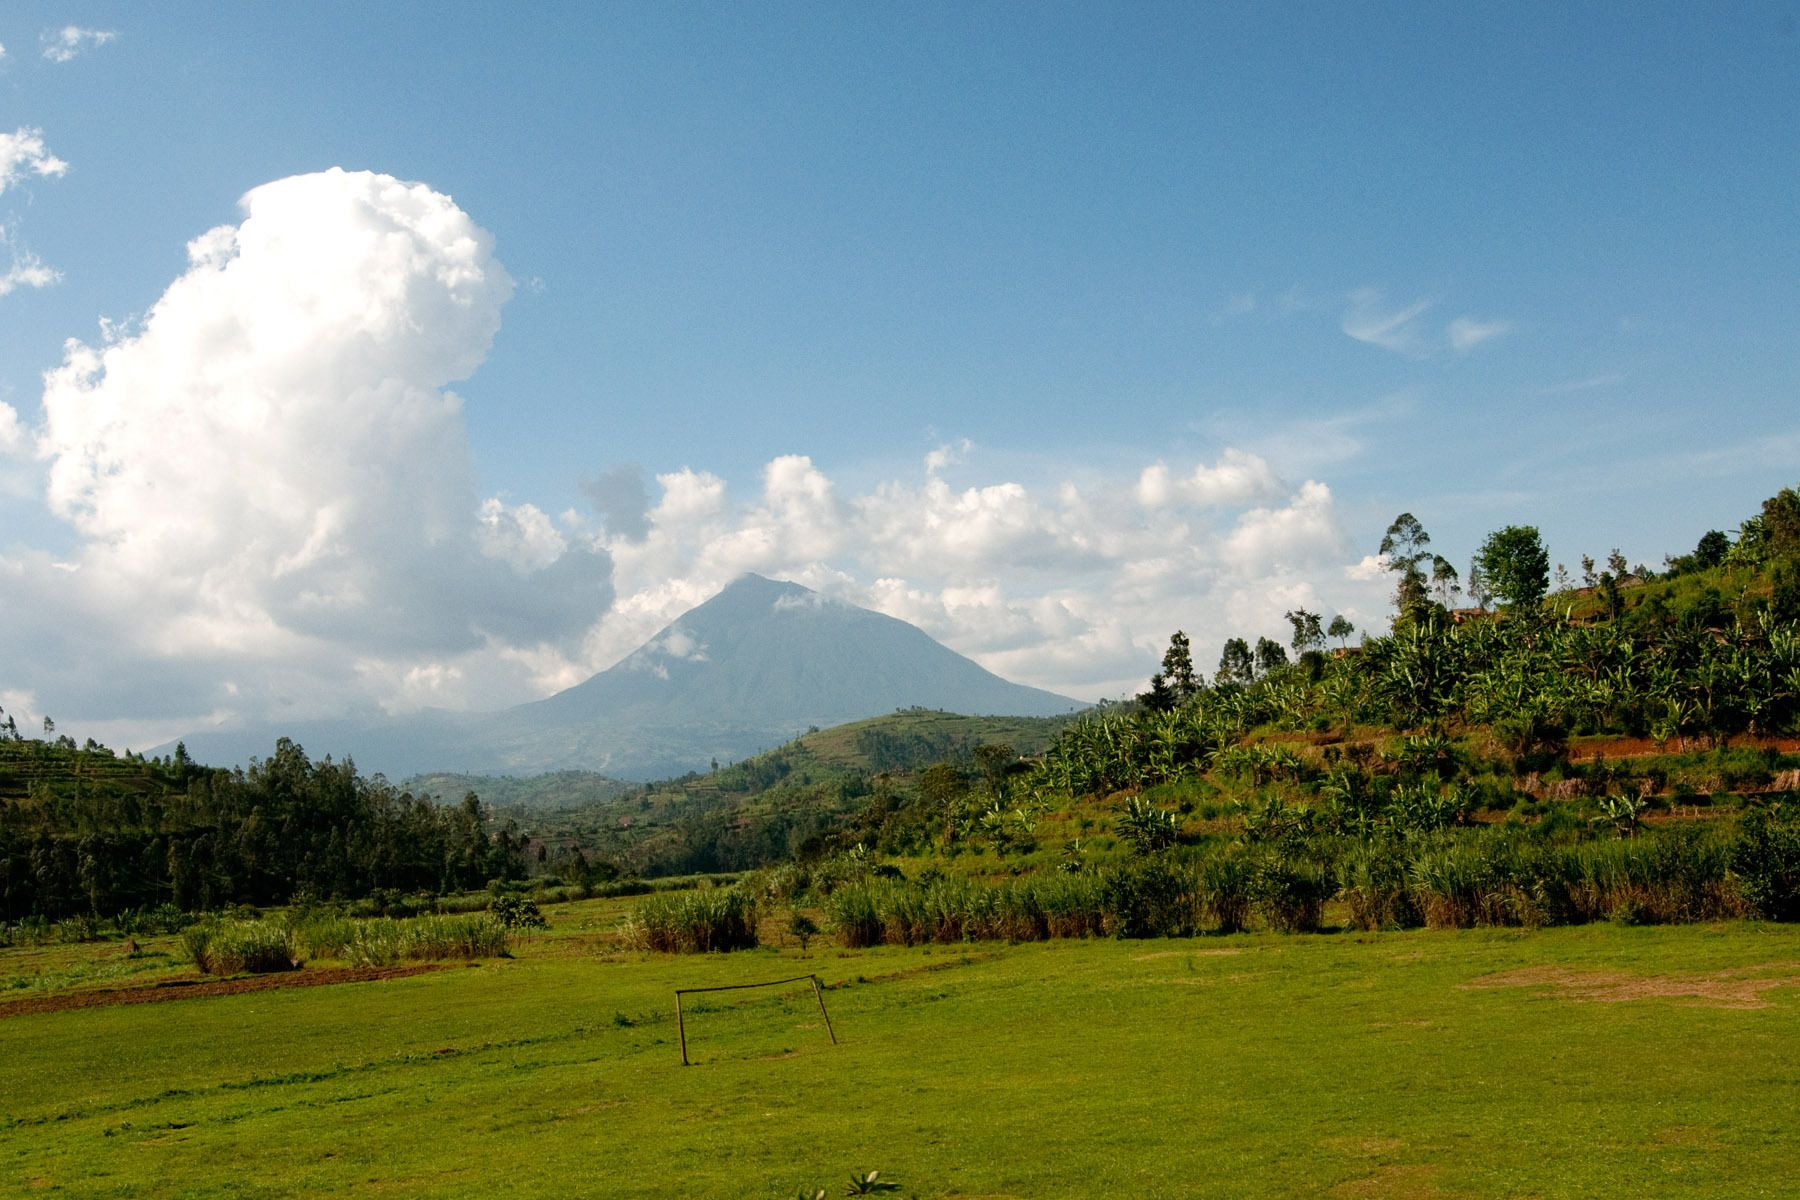 One of peaks in Volcanoes National Park, Rwanda, looms on the horizon.